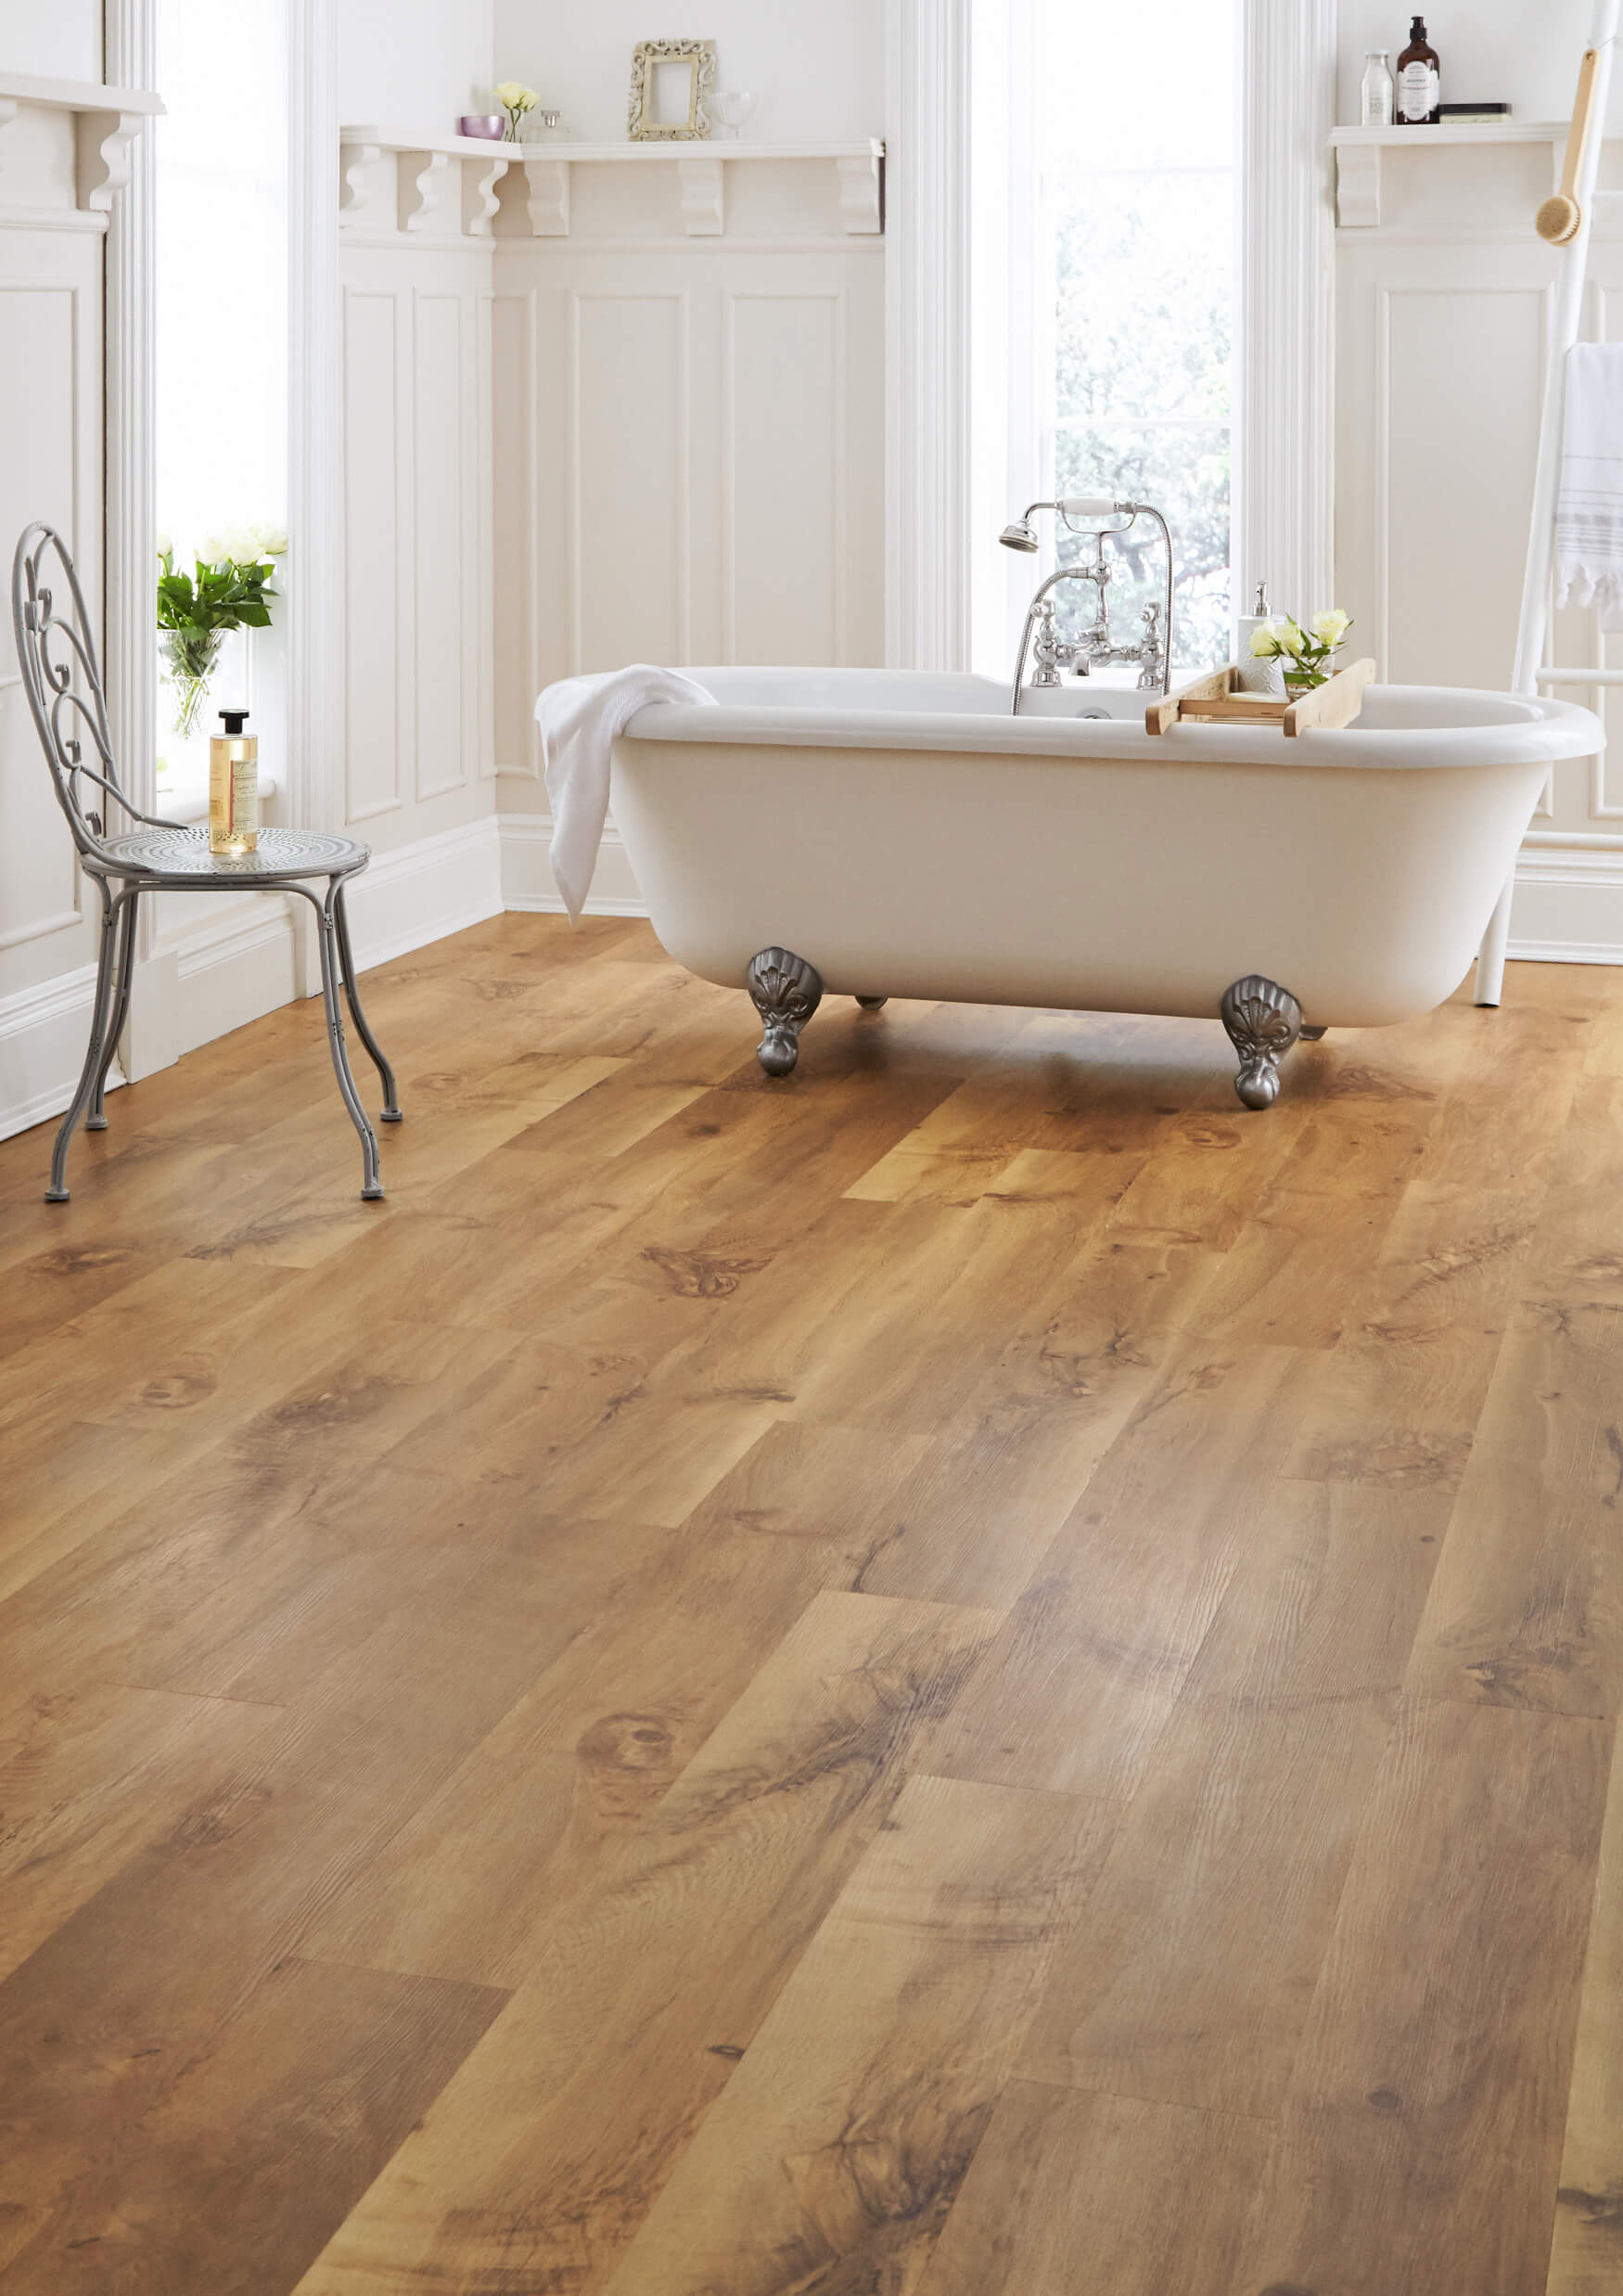 Bathroom vinyl flooring tiles